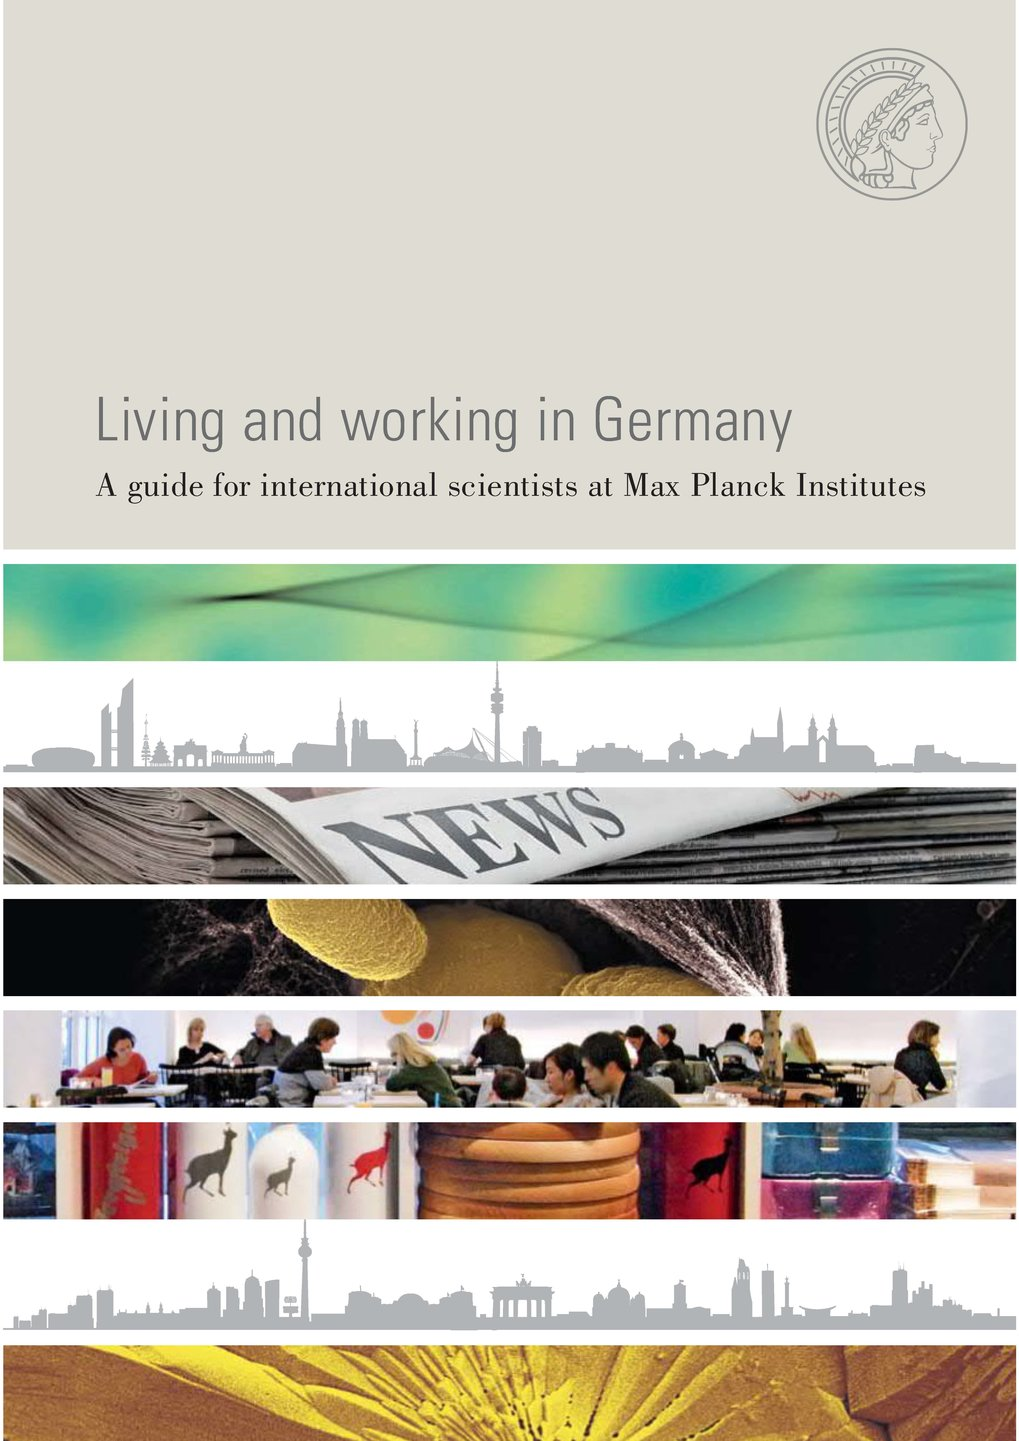 Living and working in Germany